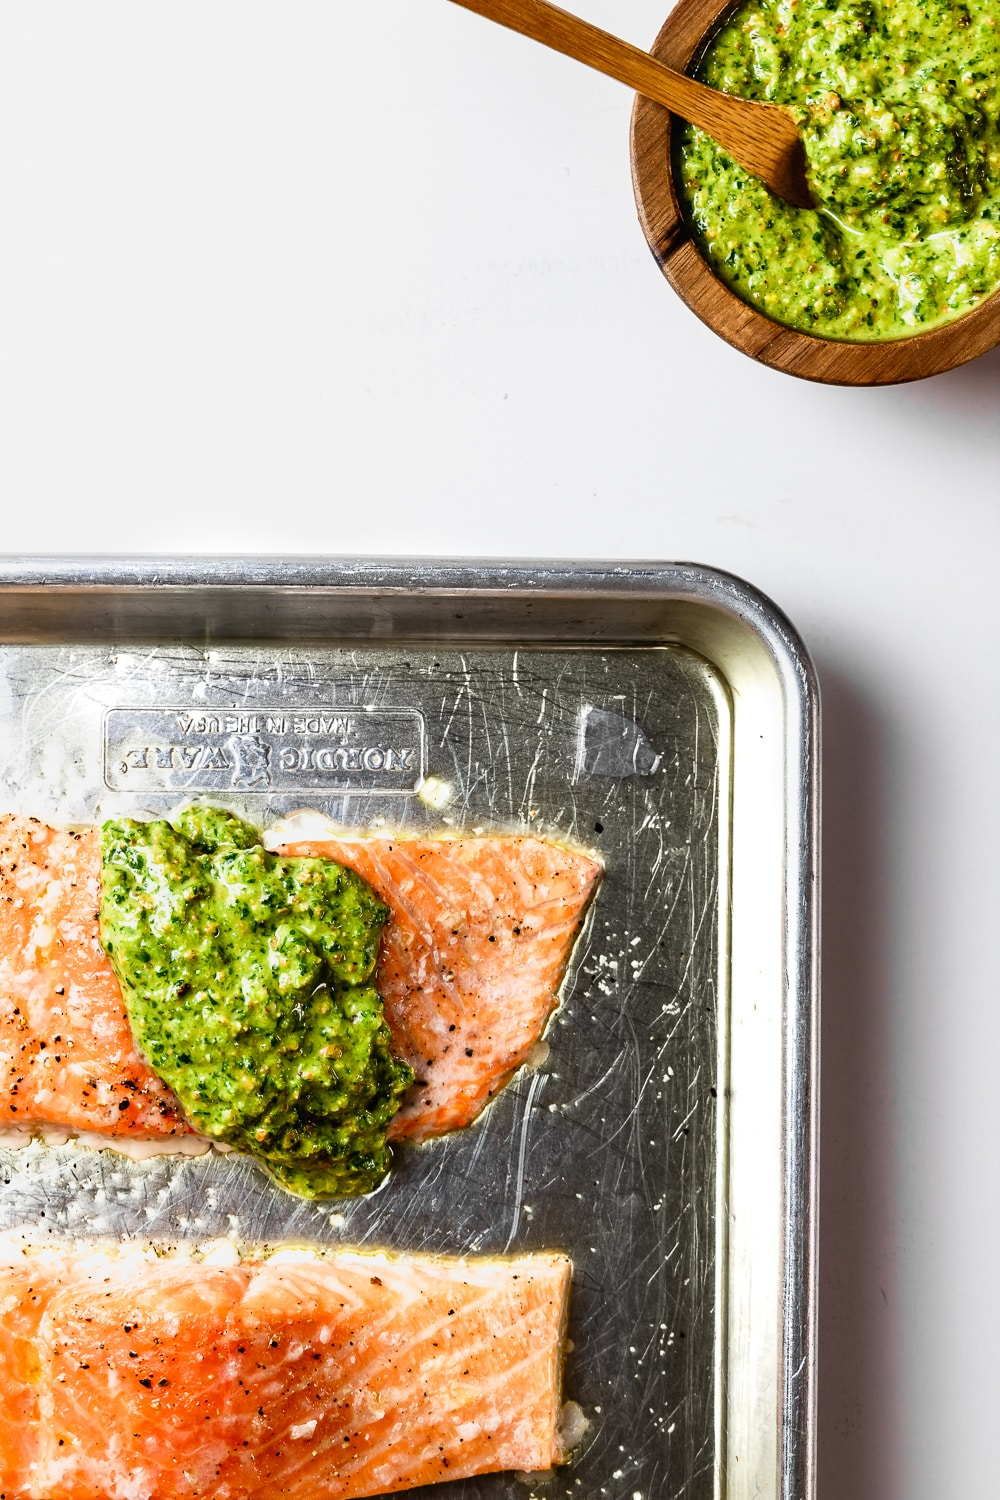 fillet of slow roasted salmon with pistachio pesto on rimmed baking sheet and small wooden bowl of pistachio pesto on the side with wooden spoon